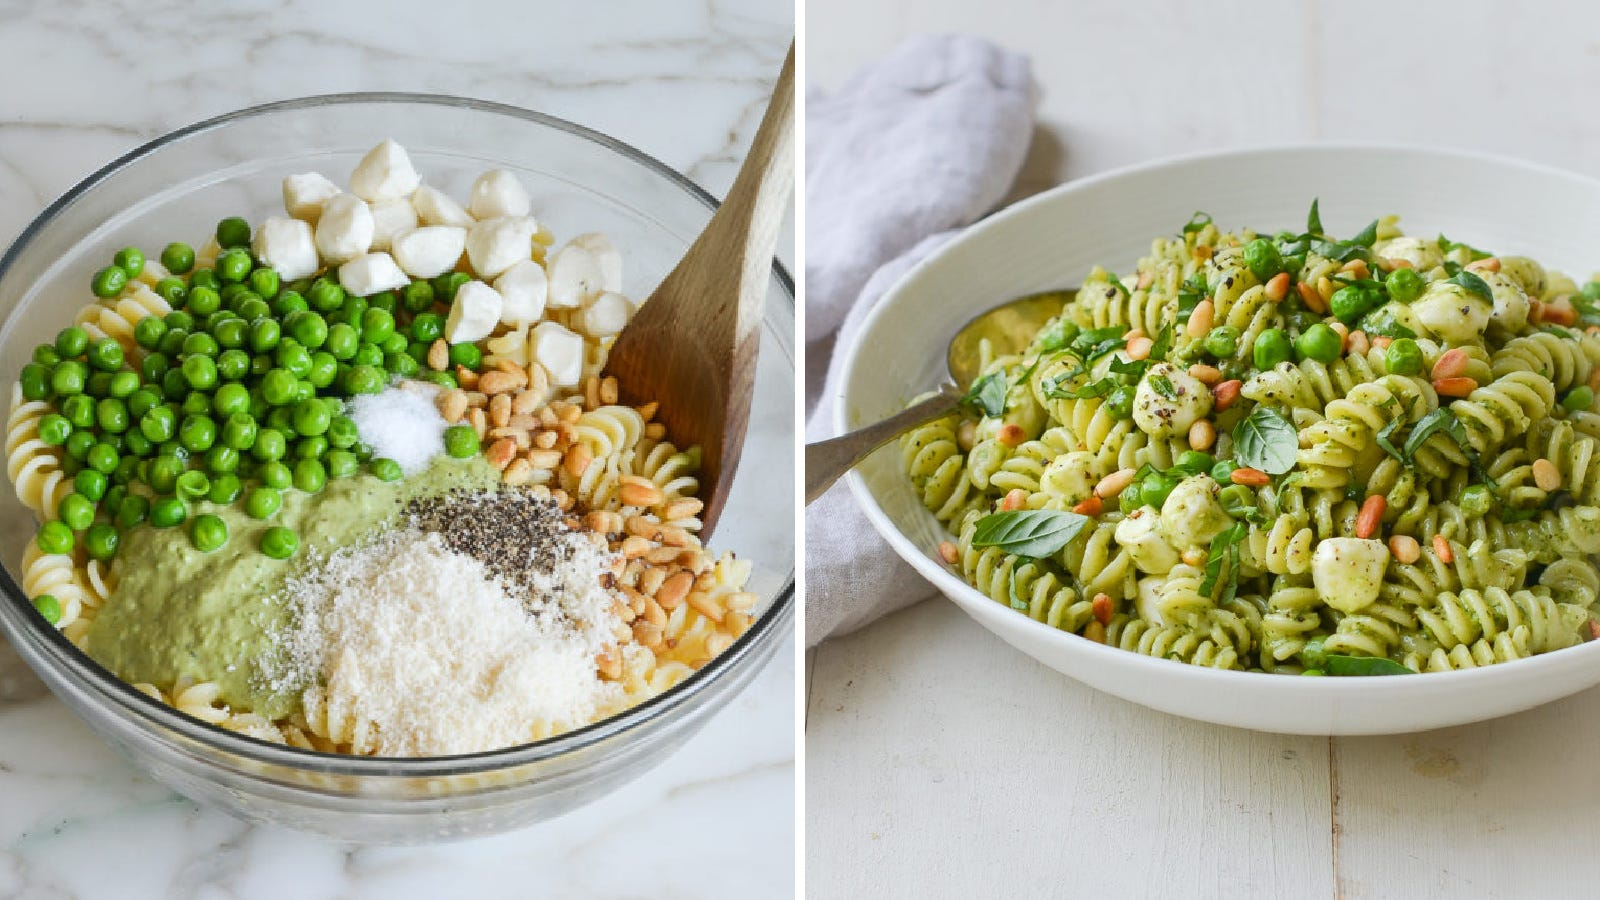 Two image: The left image is of all the ingredients for a pesto pasta salad before being mixed into a delicious pasta salad, and the right image is of pasta salad plated and ready to eat.